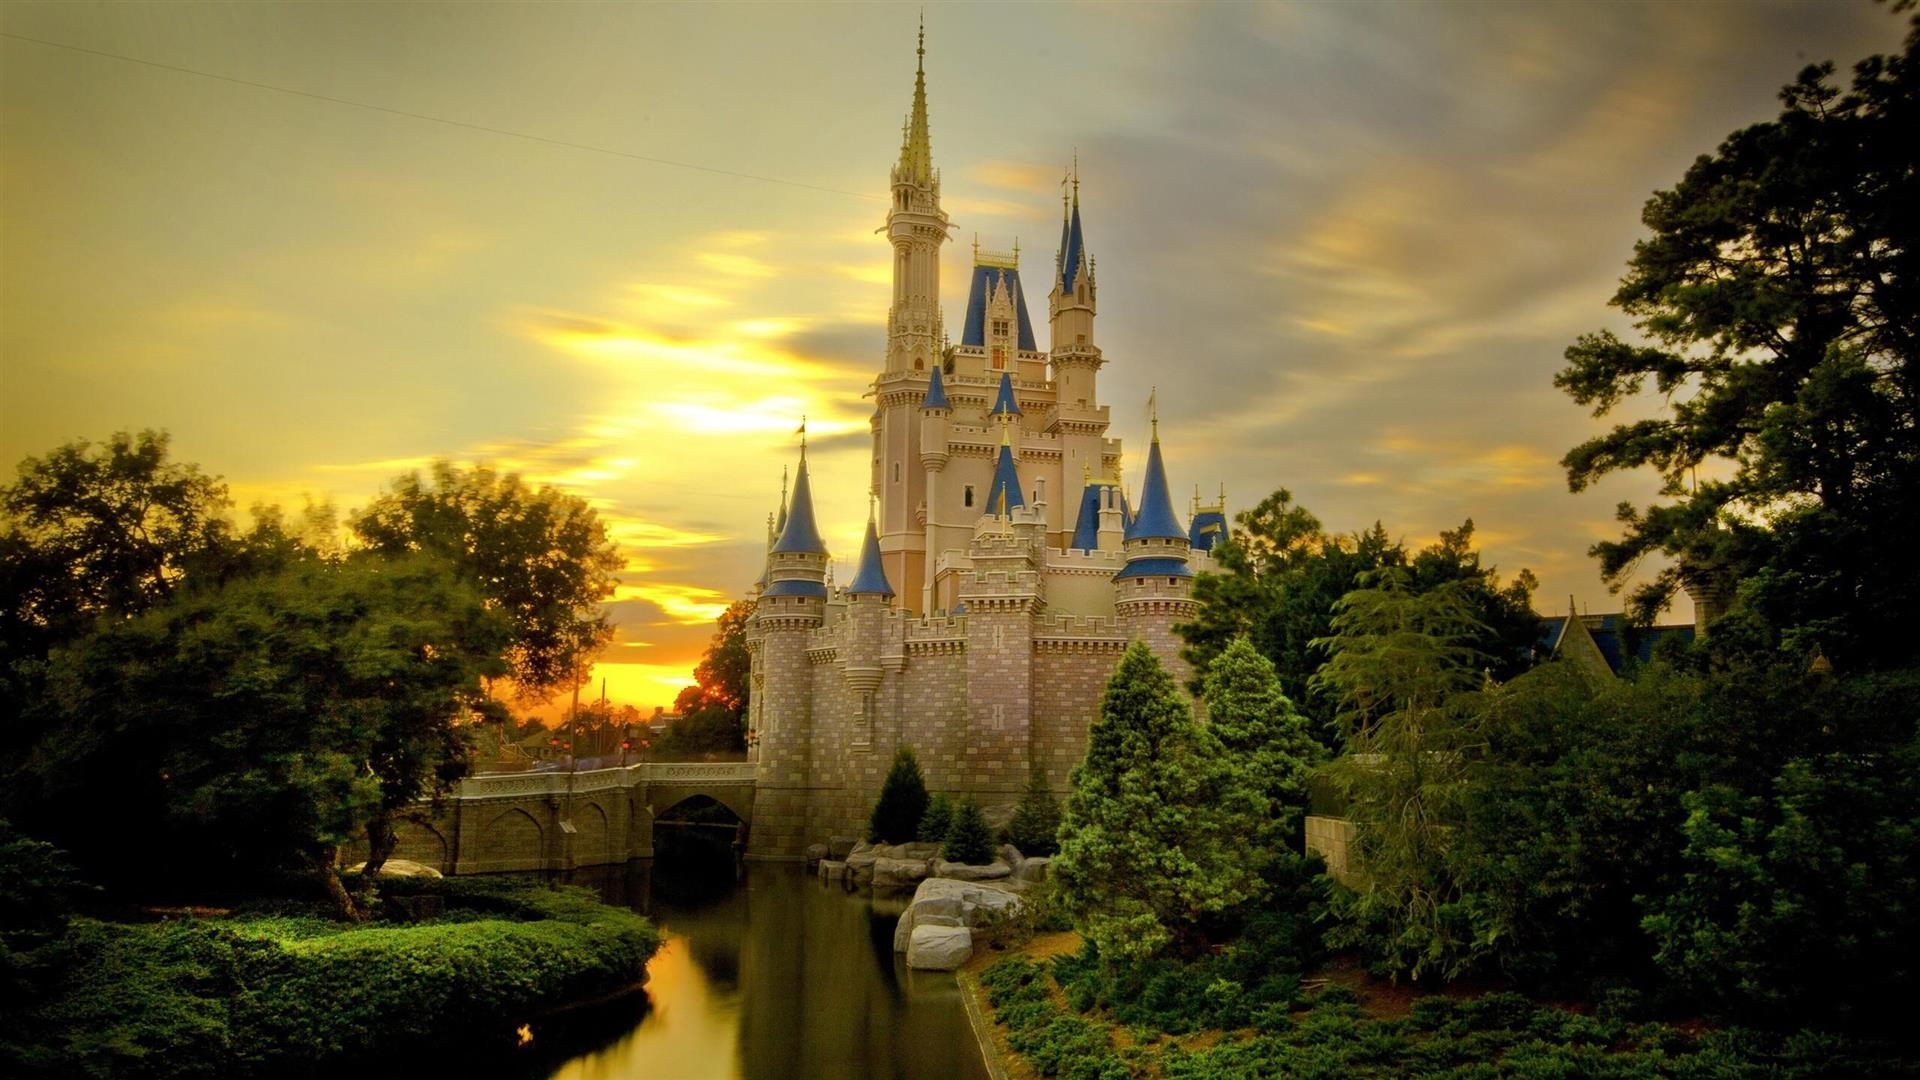 1920x1080 Amazing Beautiful Cinderella Castle Image Free Download